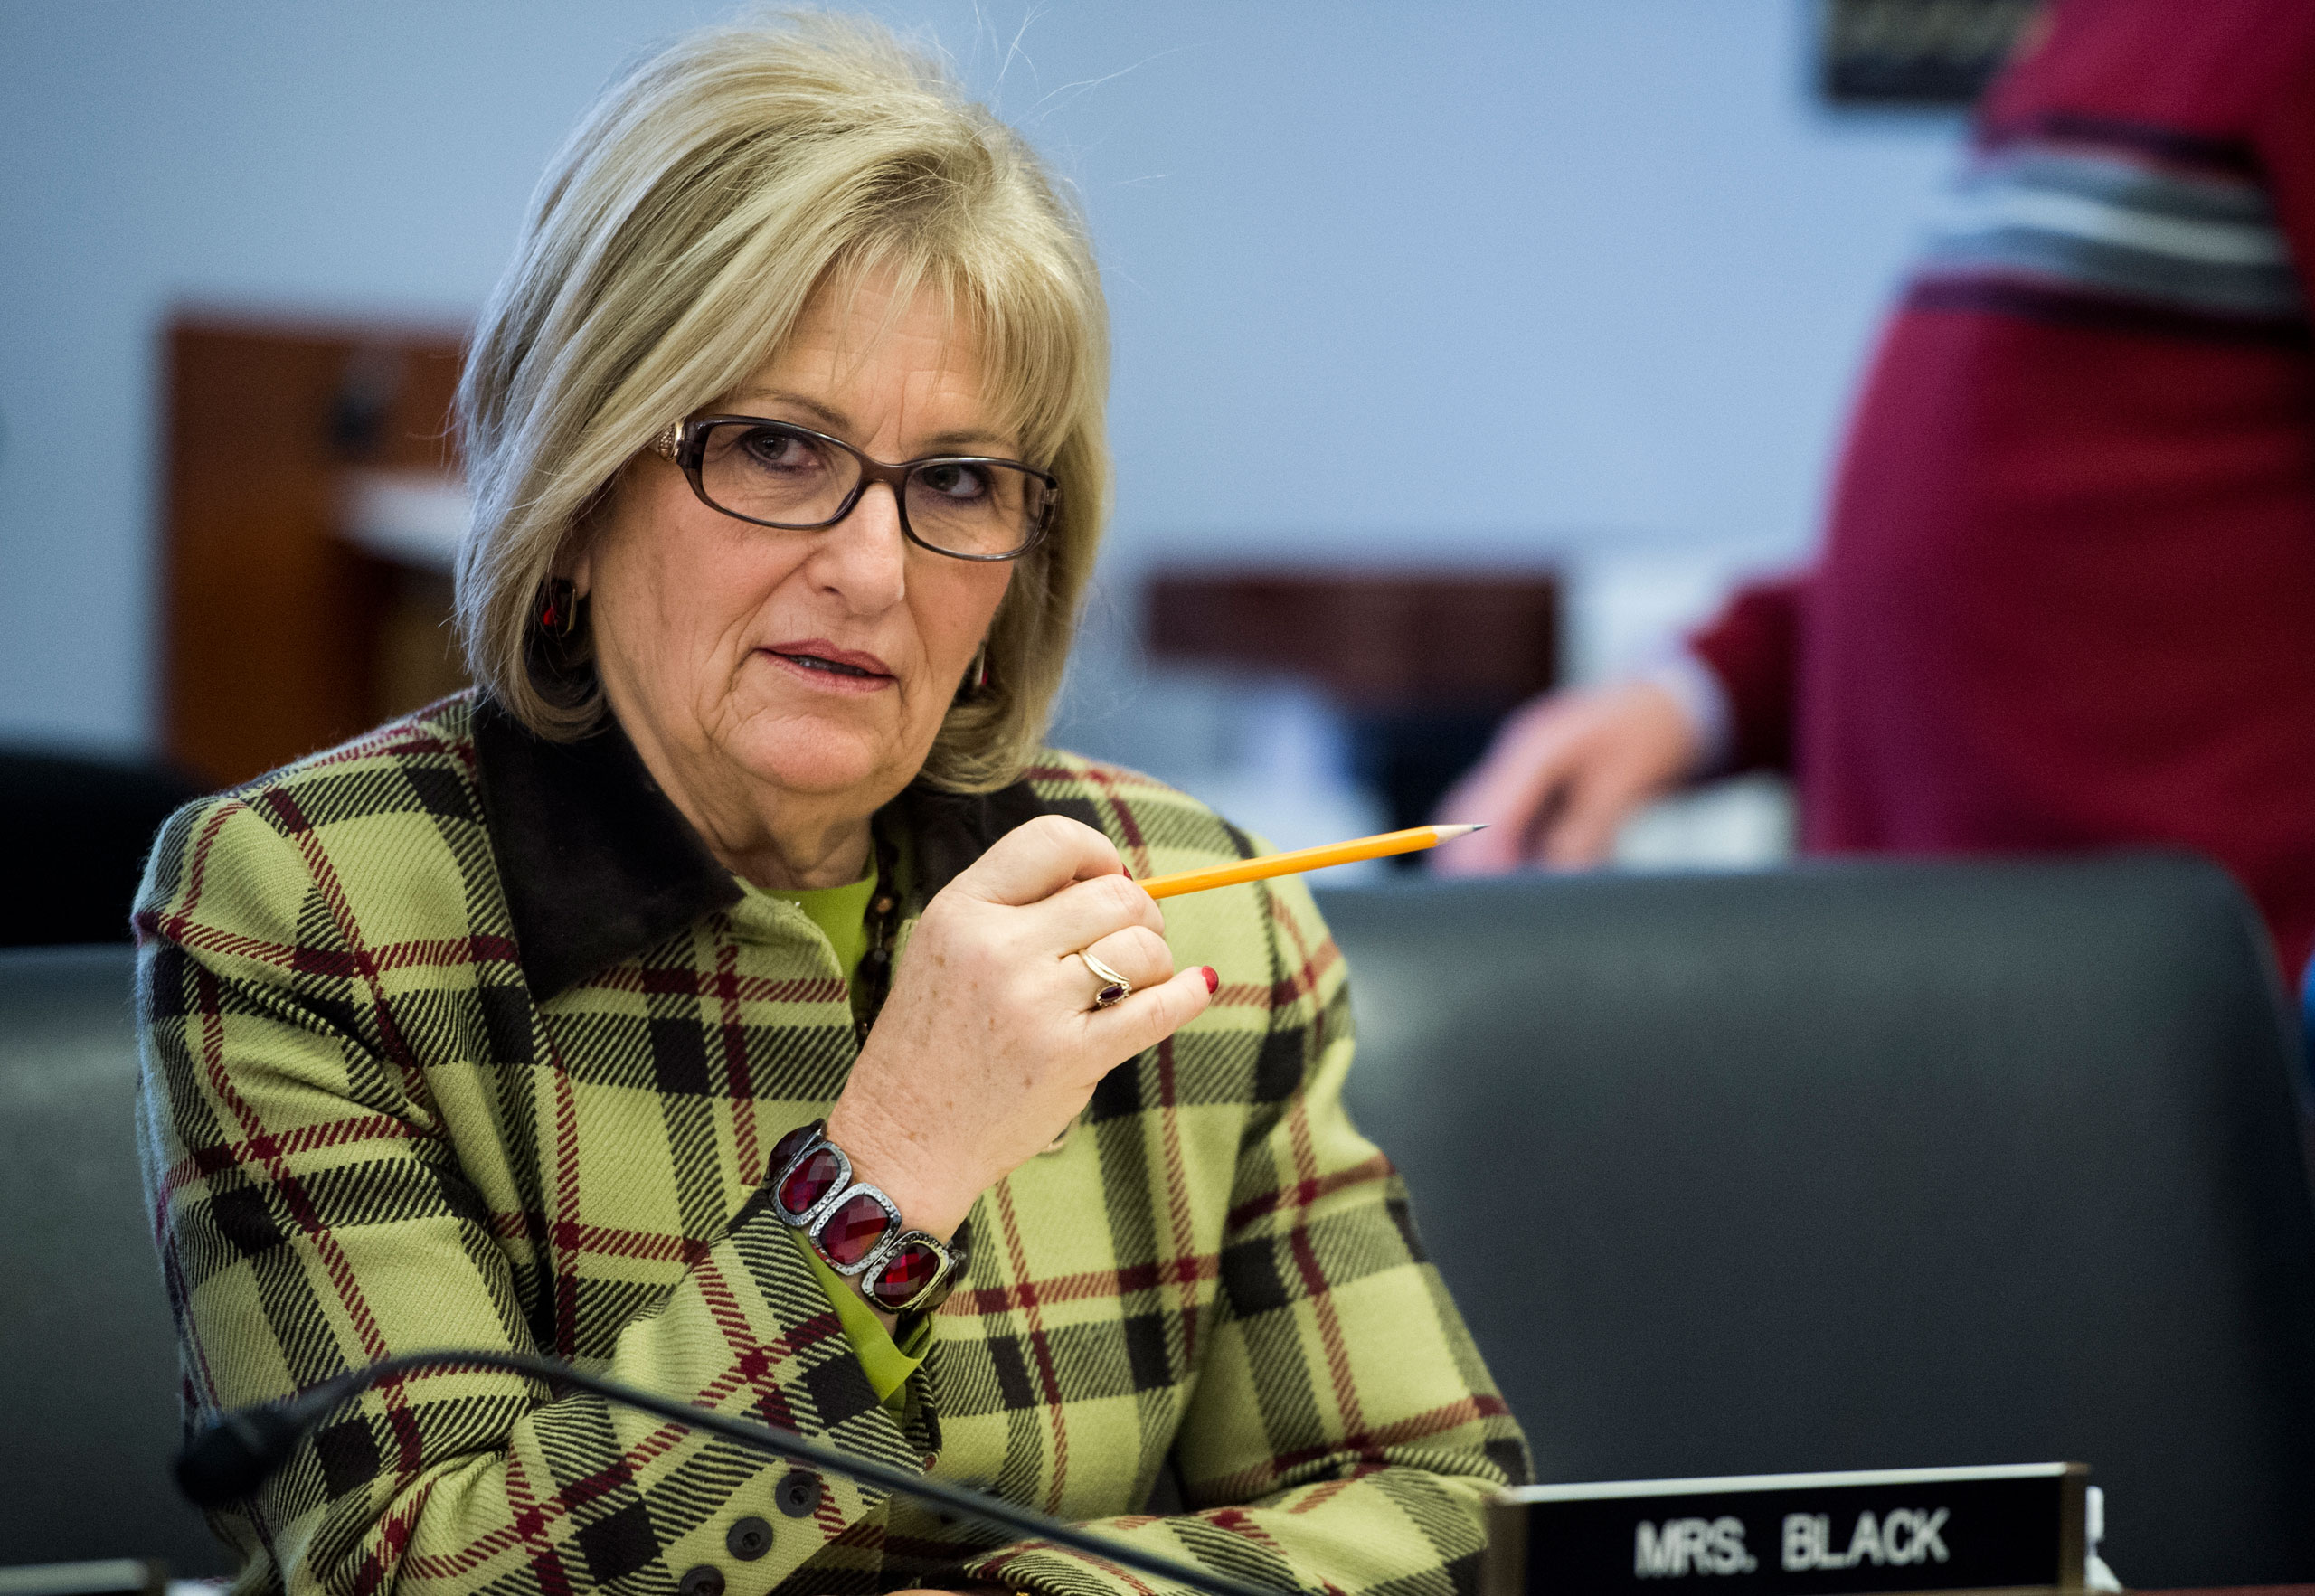 Rep. Diane Black takes her seat for the House Budget Committee hearing on  The Congressional Budget Office's (CBO) Budget and Economic Outlook  on  Jan. 27, 2015.